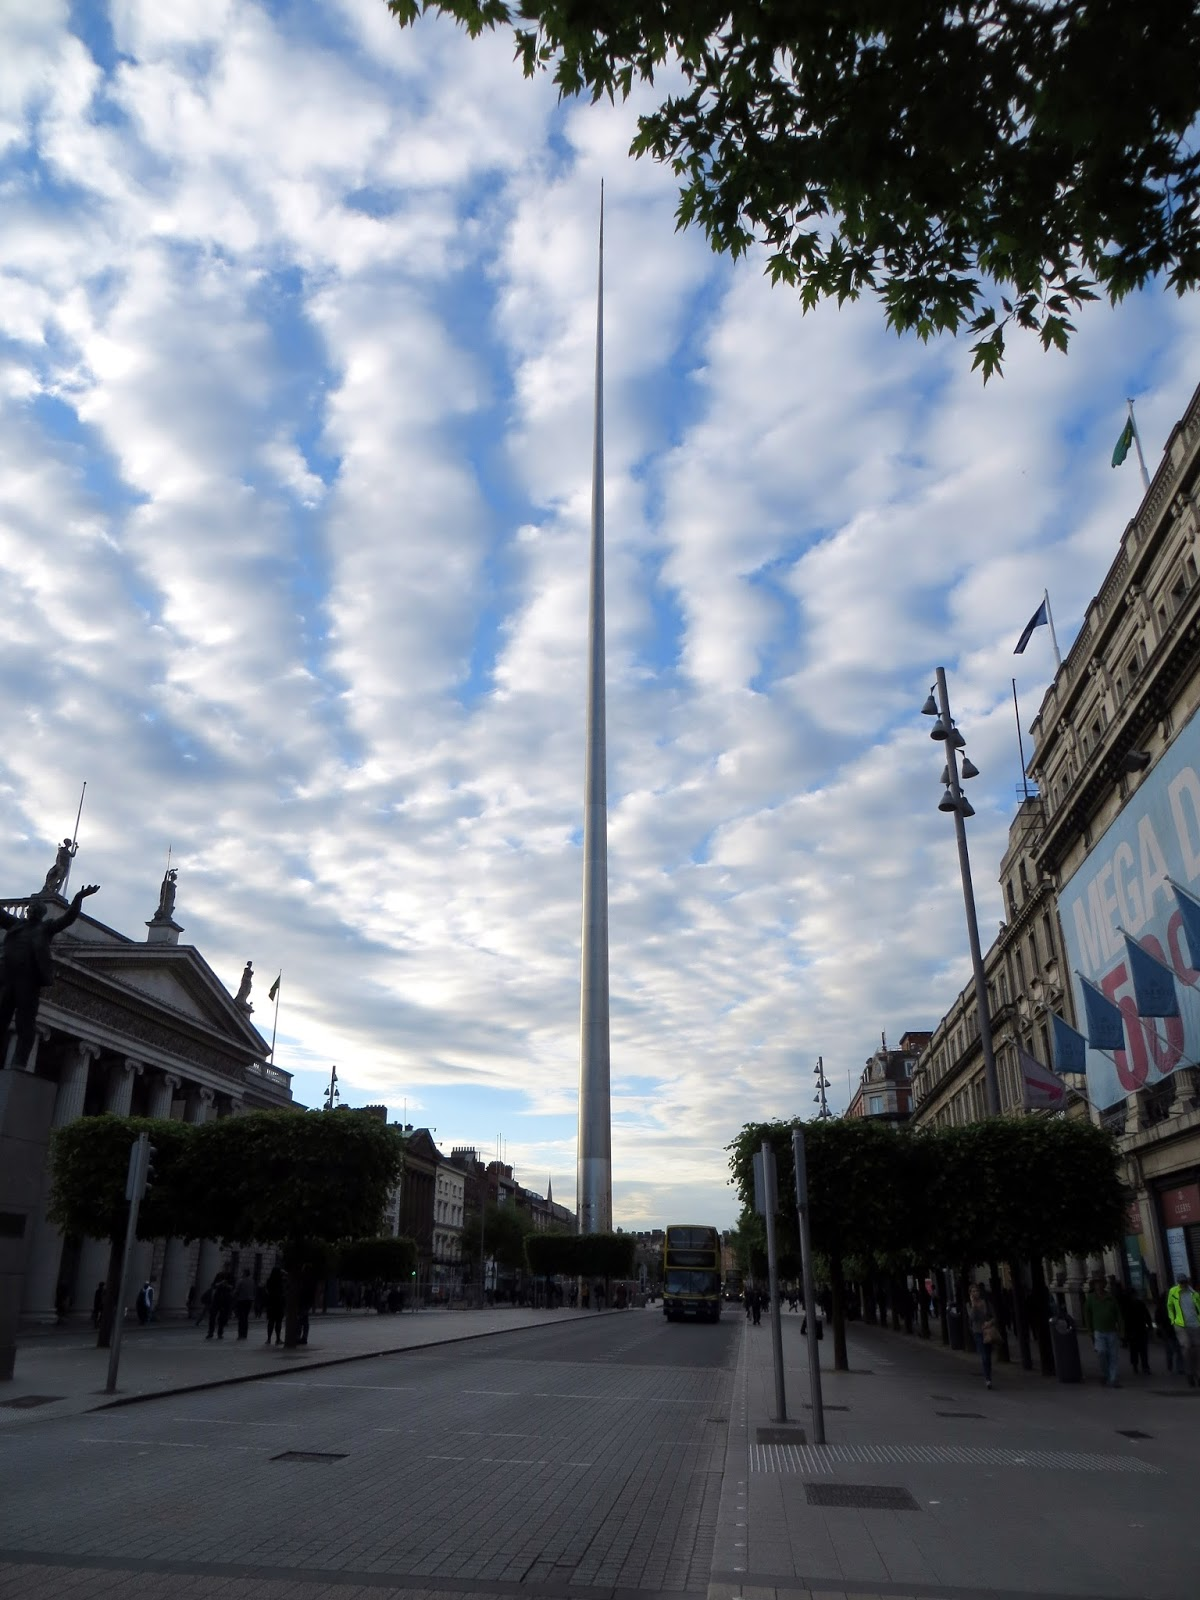 clouds, Dublin, Ireland, Europe, things to do in dublin, guide to dublin, travel blog, travelling, the custom house, liffey, ireland photography, dublin photography, eire, Guinness, temple bar, irish pub, traditional, cobbled street, beautiful, dublin spire, O'Connell street, post office